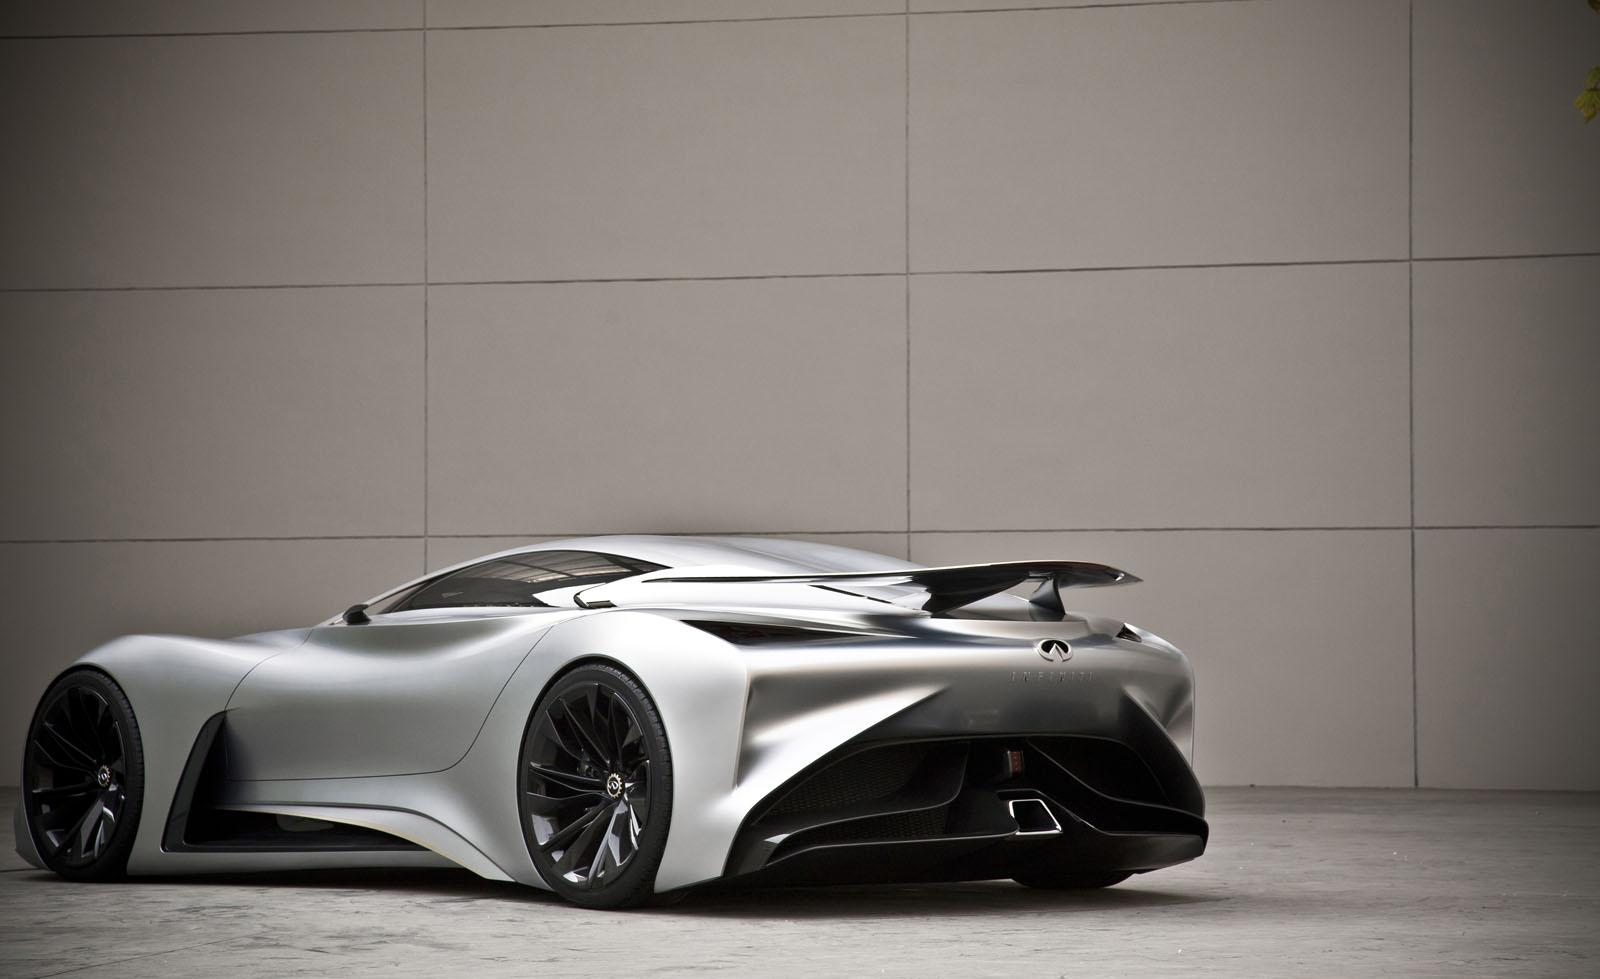 infiniti concept vision gran turismo brought to life. Black Bedroom Furniture Sets. Home Design Ideas